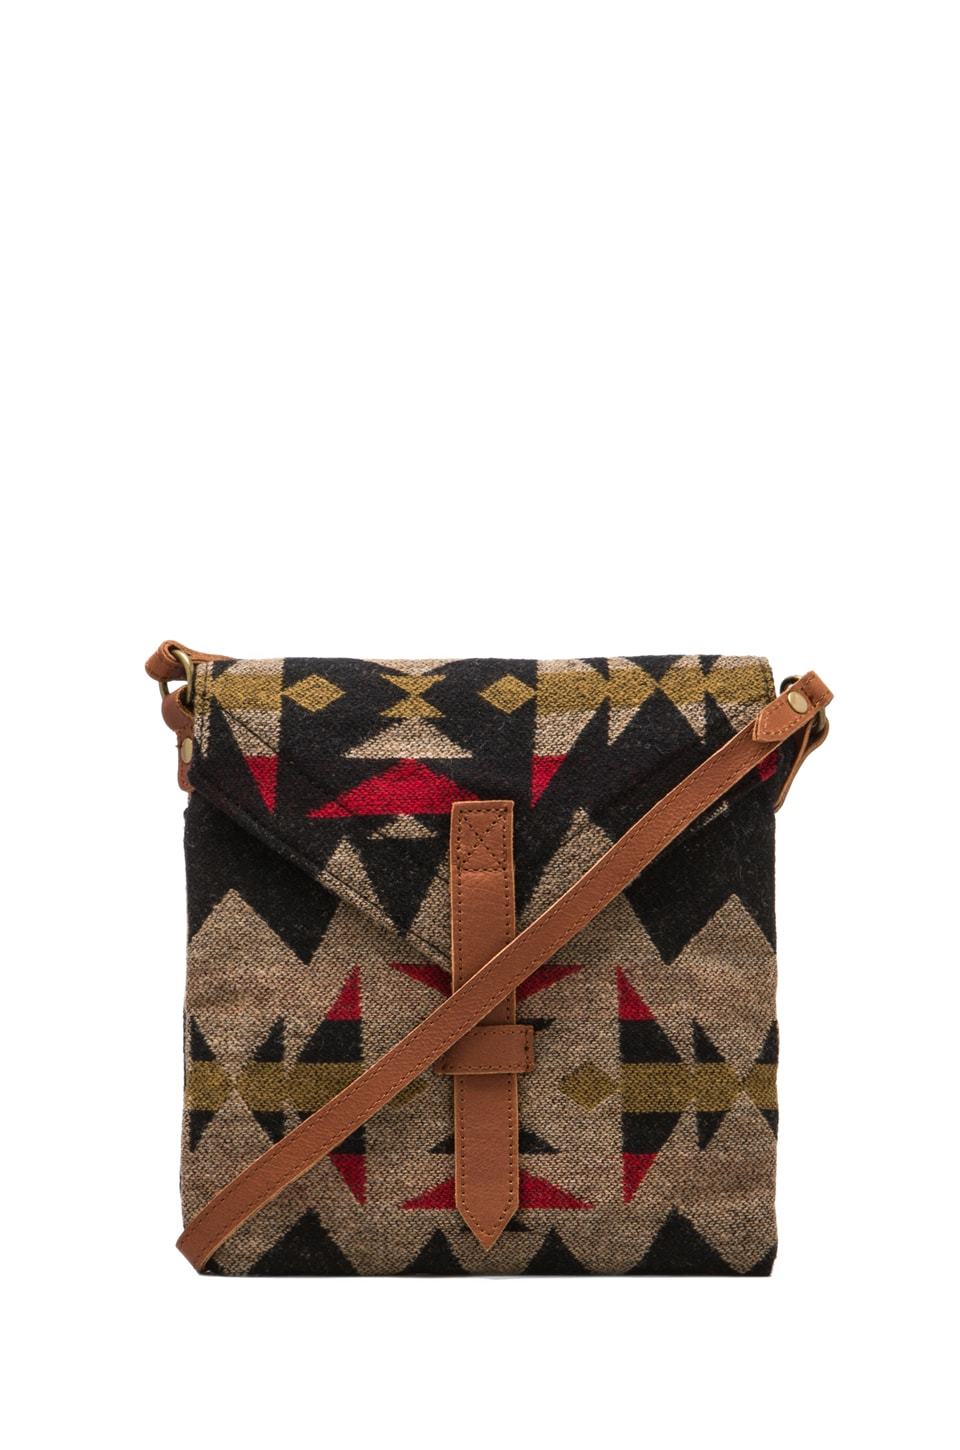 The Portland Collection by Pendleton Saddle Mountain Satchel in Sonora Flannel